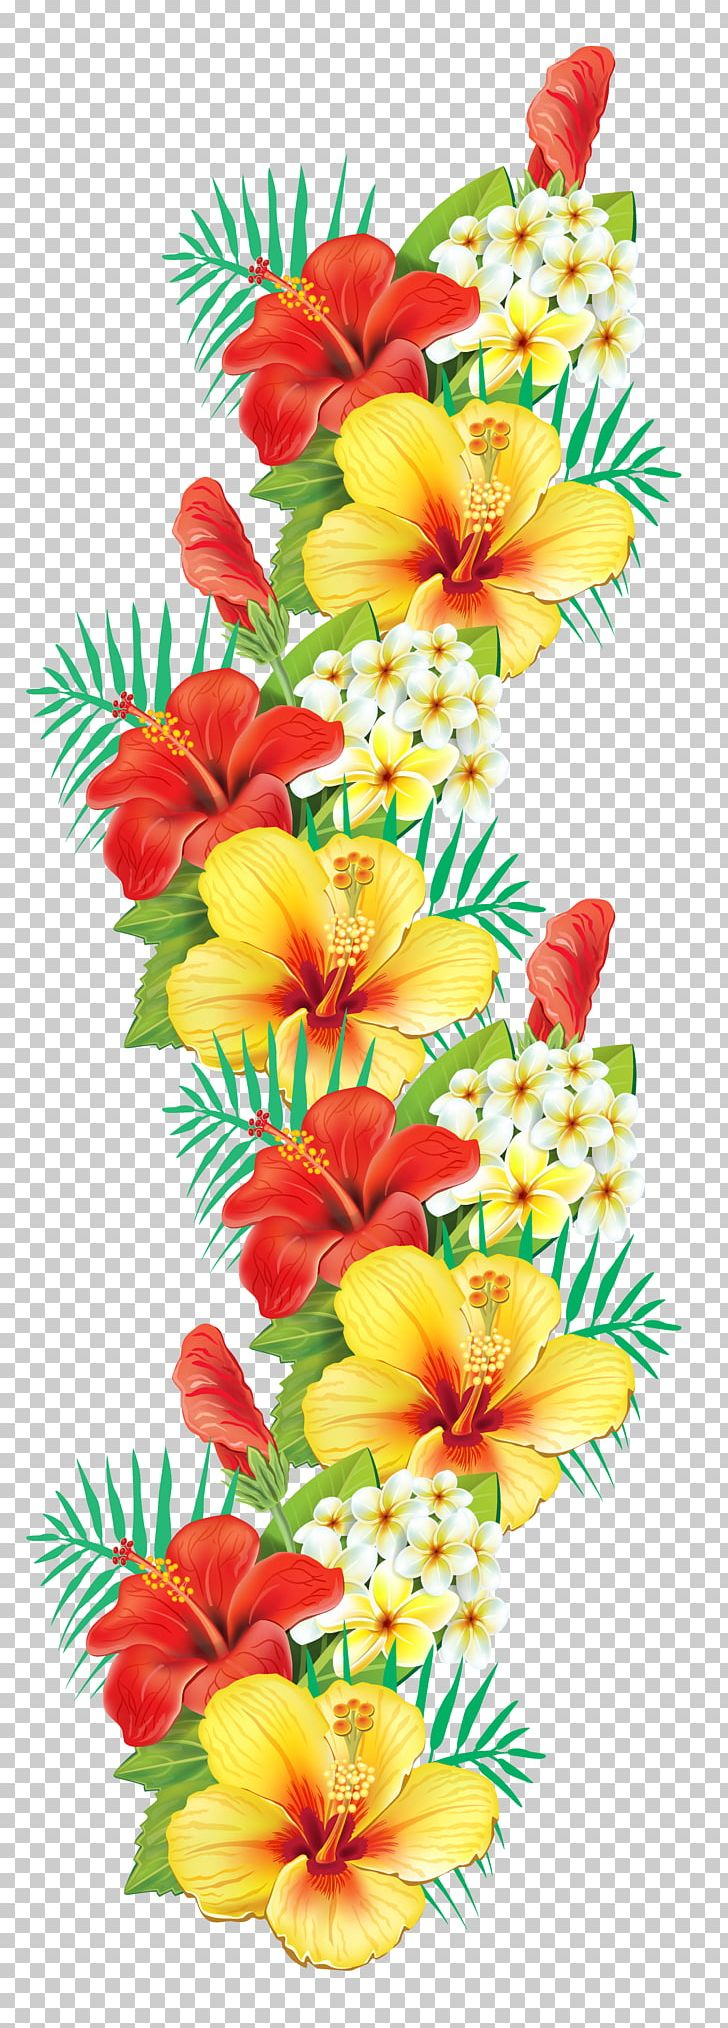 Flower PNG, Clipart, Adobe Illustrator, Art, Clip Art, Color, Computer Icons Free PNG Download